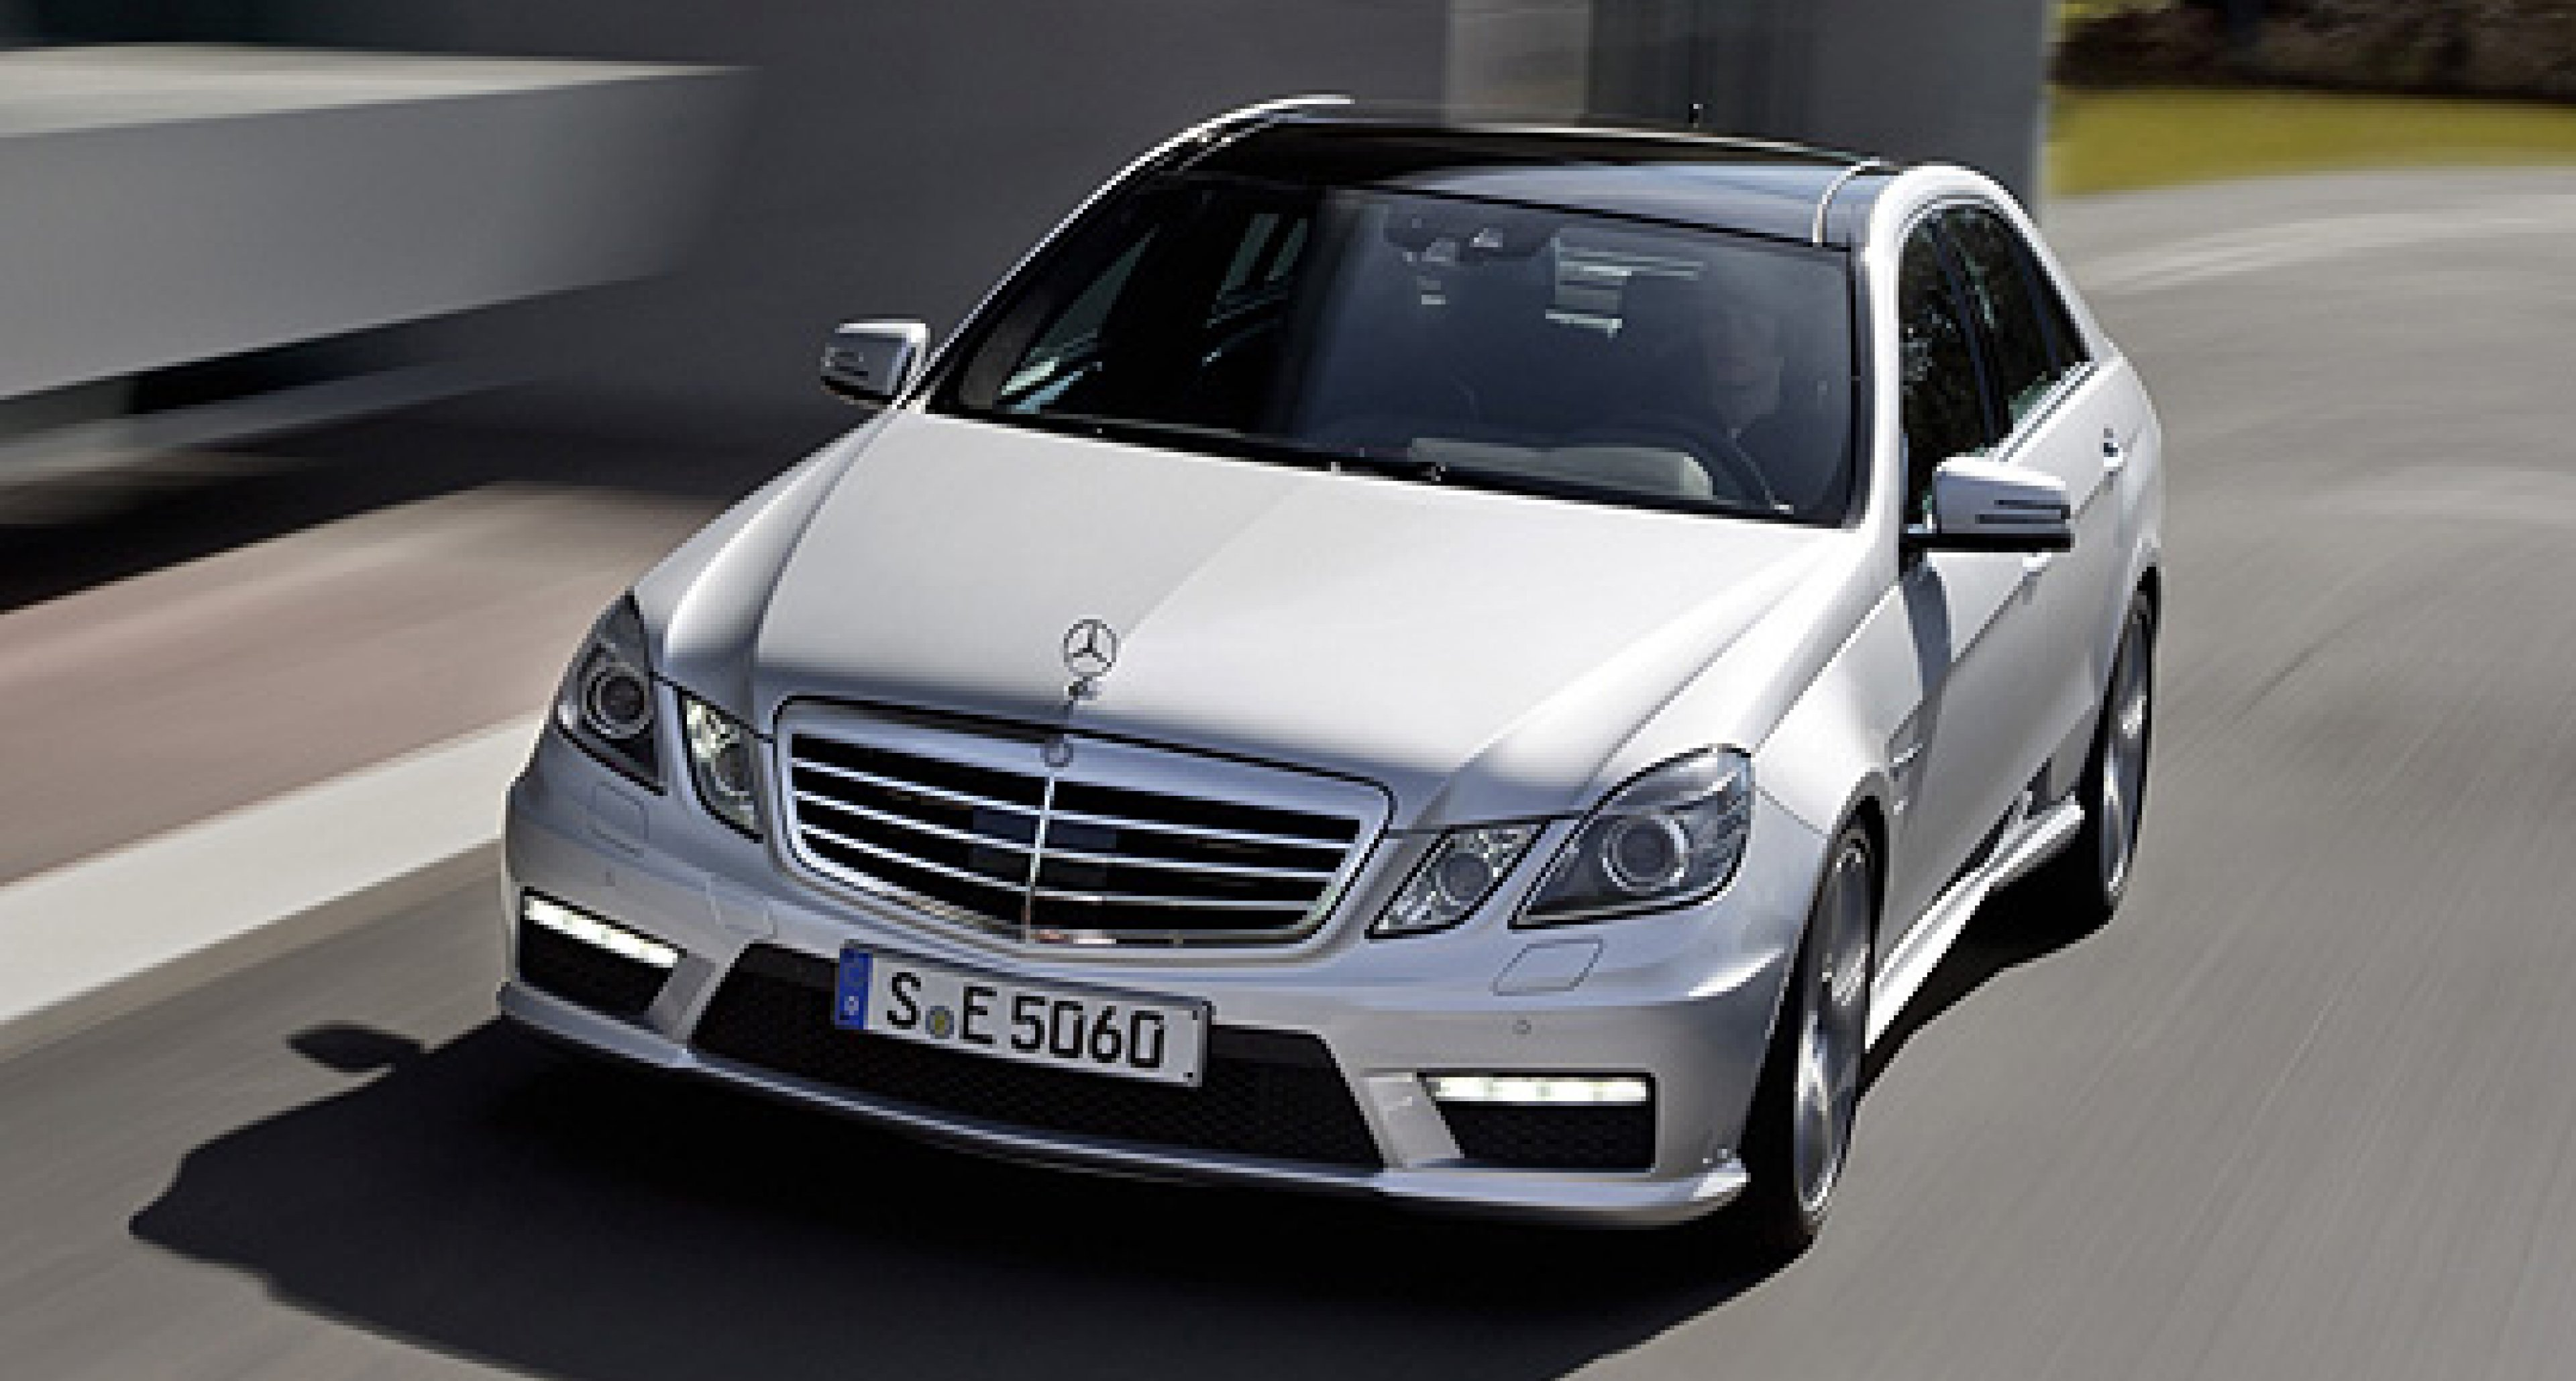 Mercedes-Benz E63 AMG with new AMG 5.5-litre Twin-turbo V8